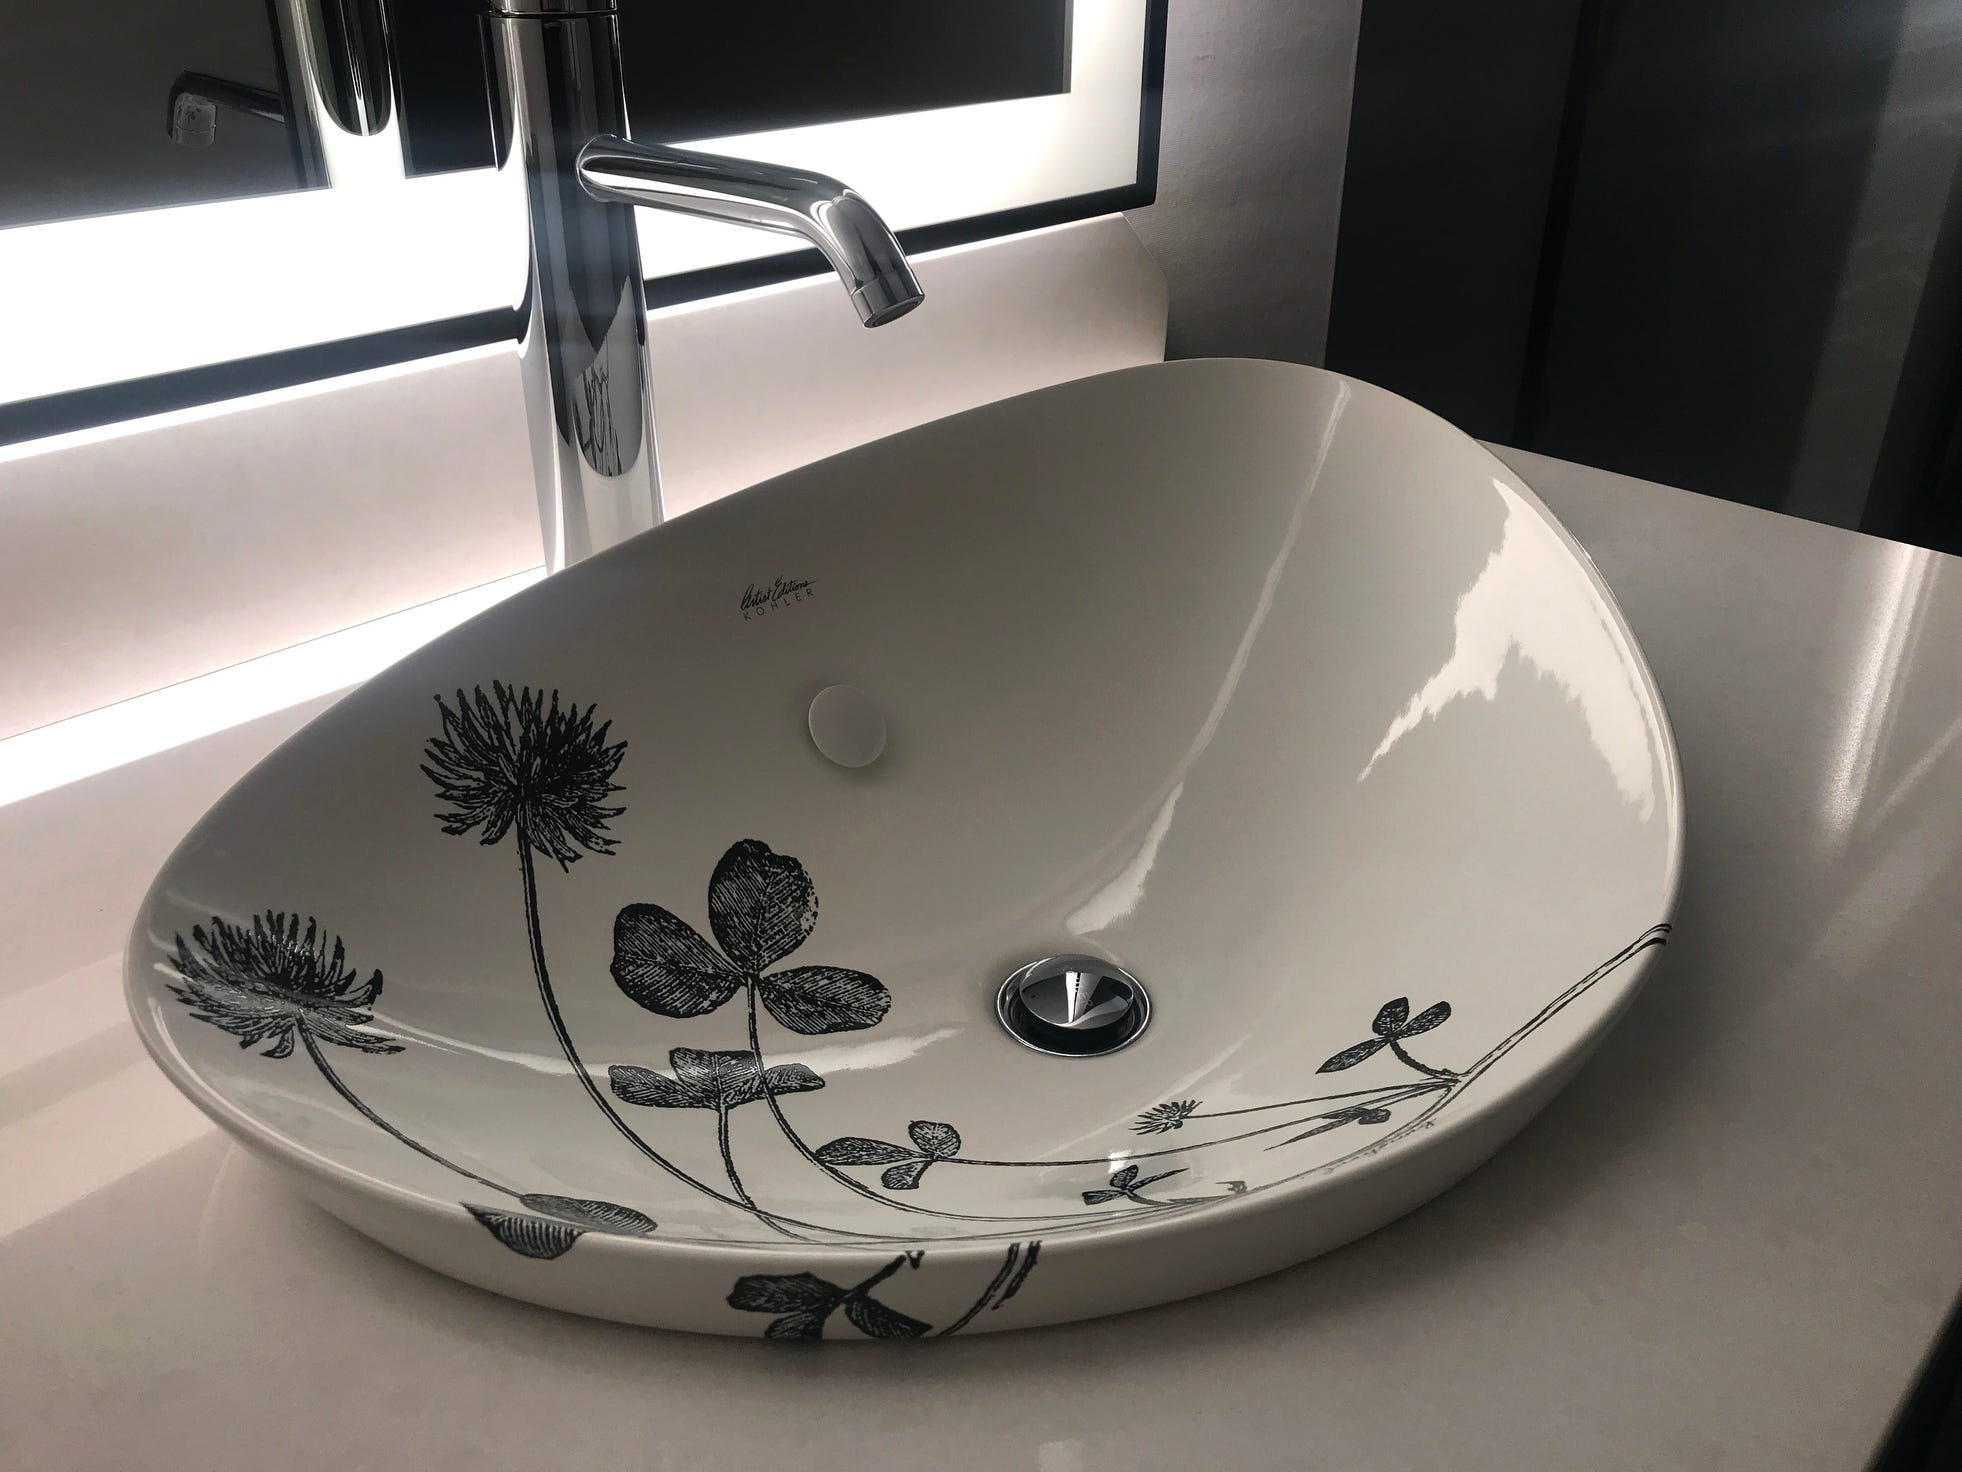 Marcus Hotels worked with the Kohler Co. to create sinks with designs by local artists.